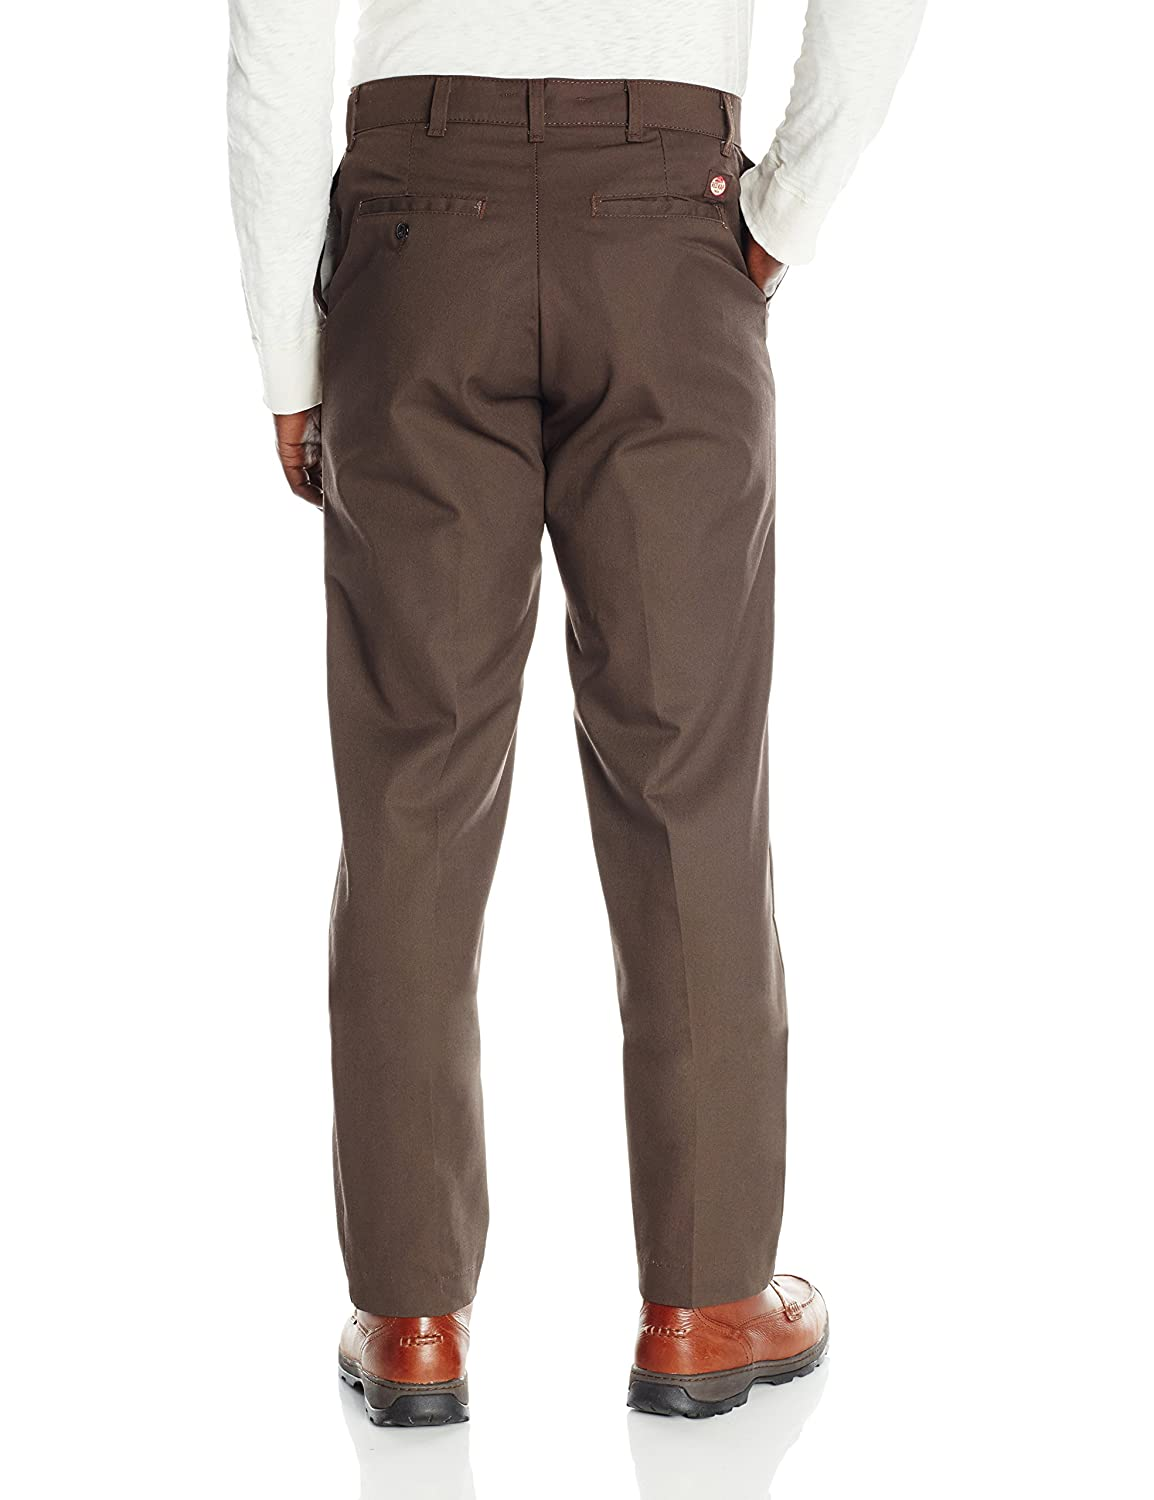 ec13be9980 Red Kap Men's Stain Resistant, Flat Front Work Pants at Amazon Men's  Clothing store: